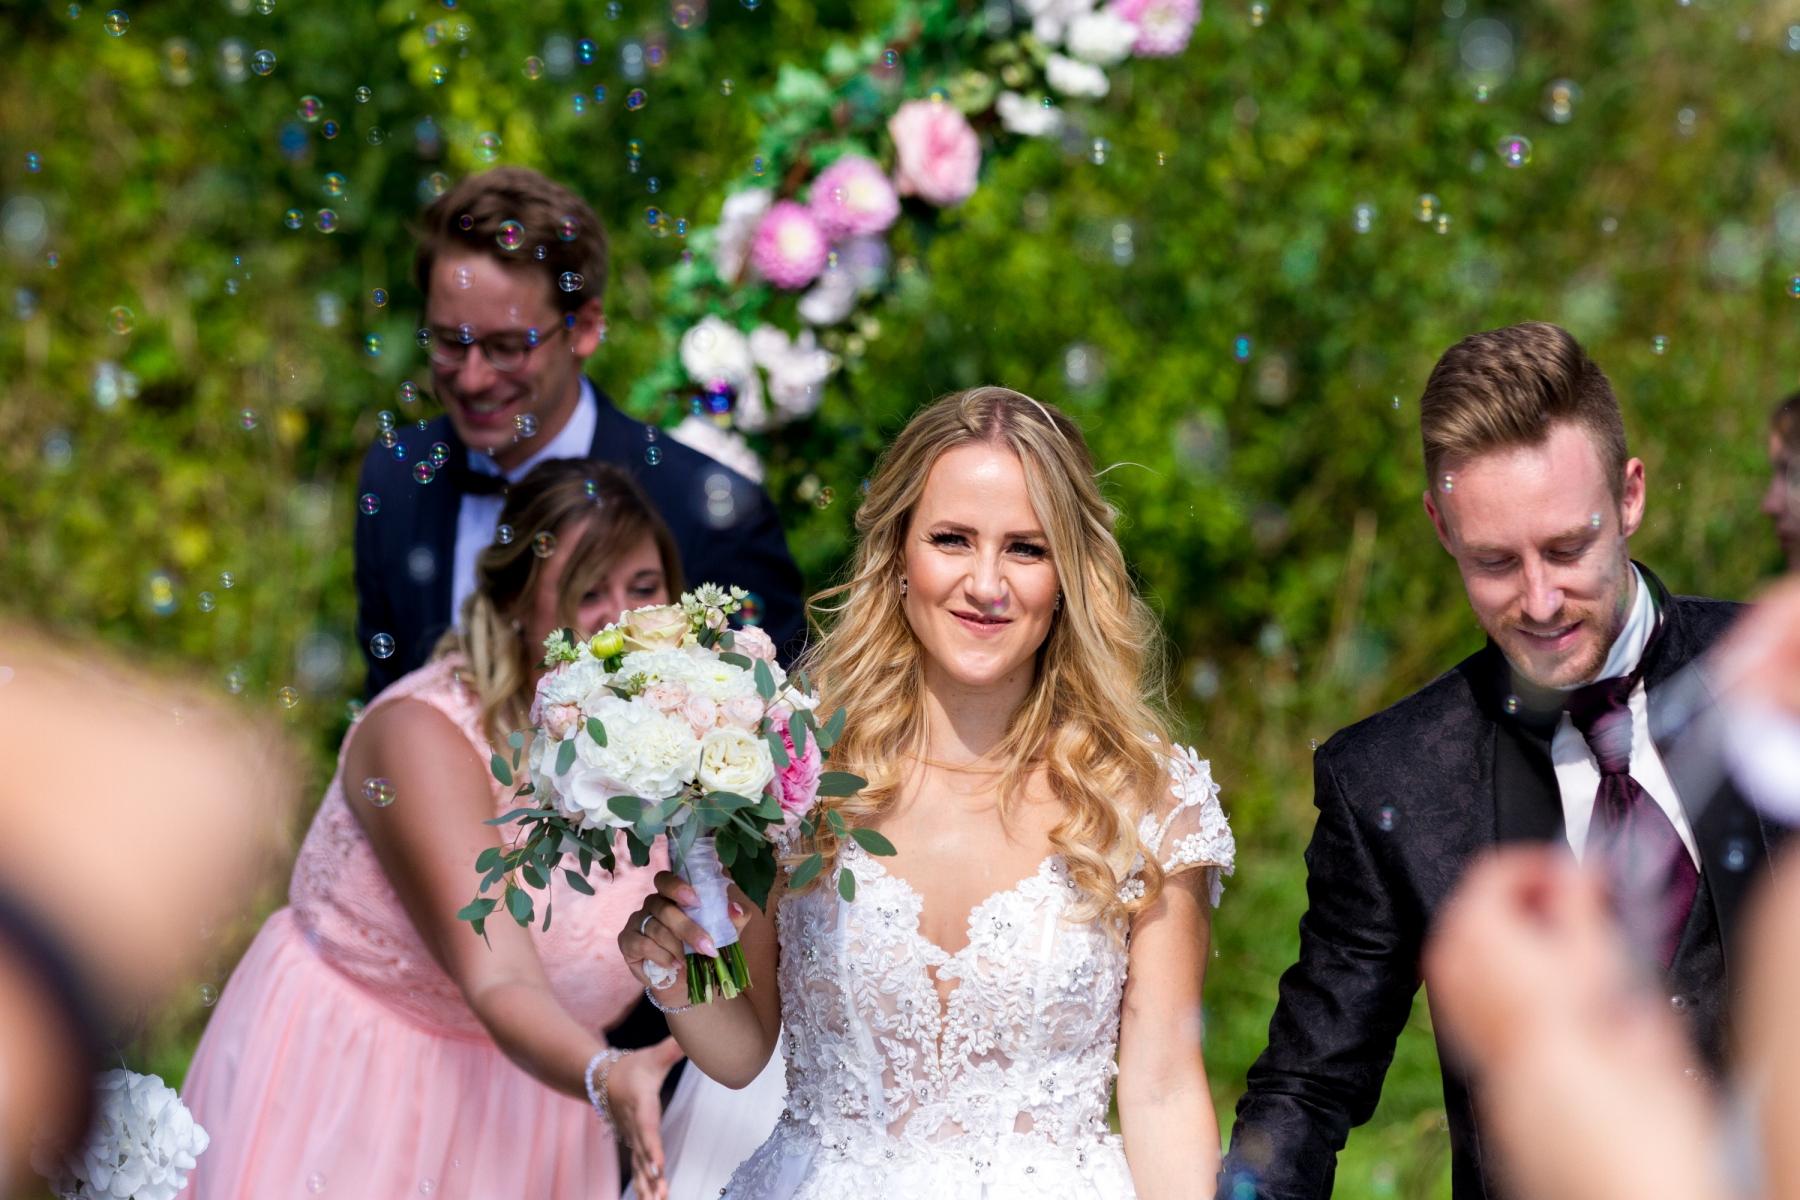 Just married: Christin & Marco